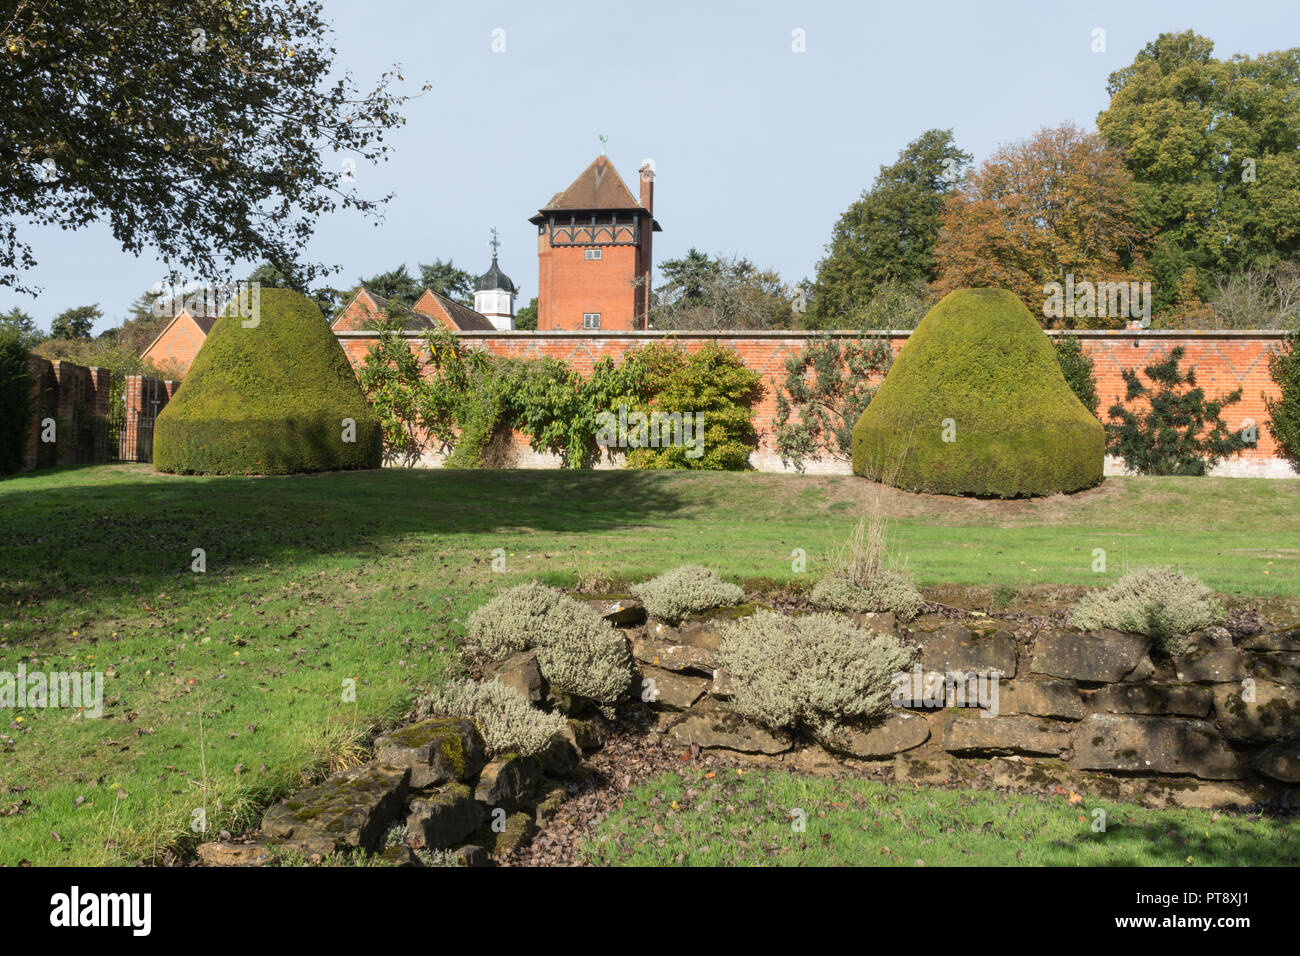 The water tower at Tylney Hall and gardens, a grand Victorian mansion and now an upscale country hotel, near Rotherwick in Hampshire, UK - Stock Image